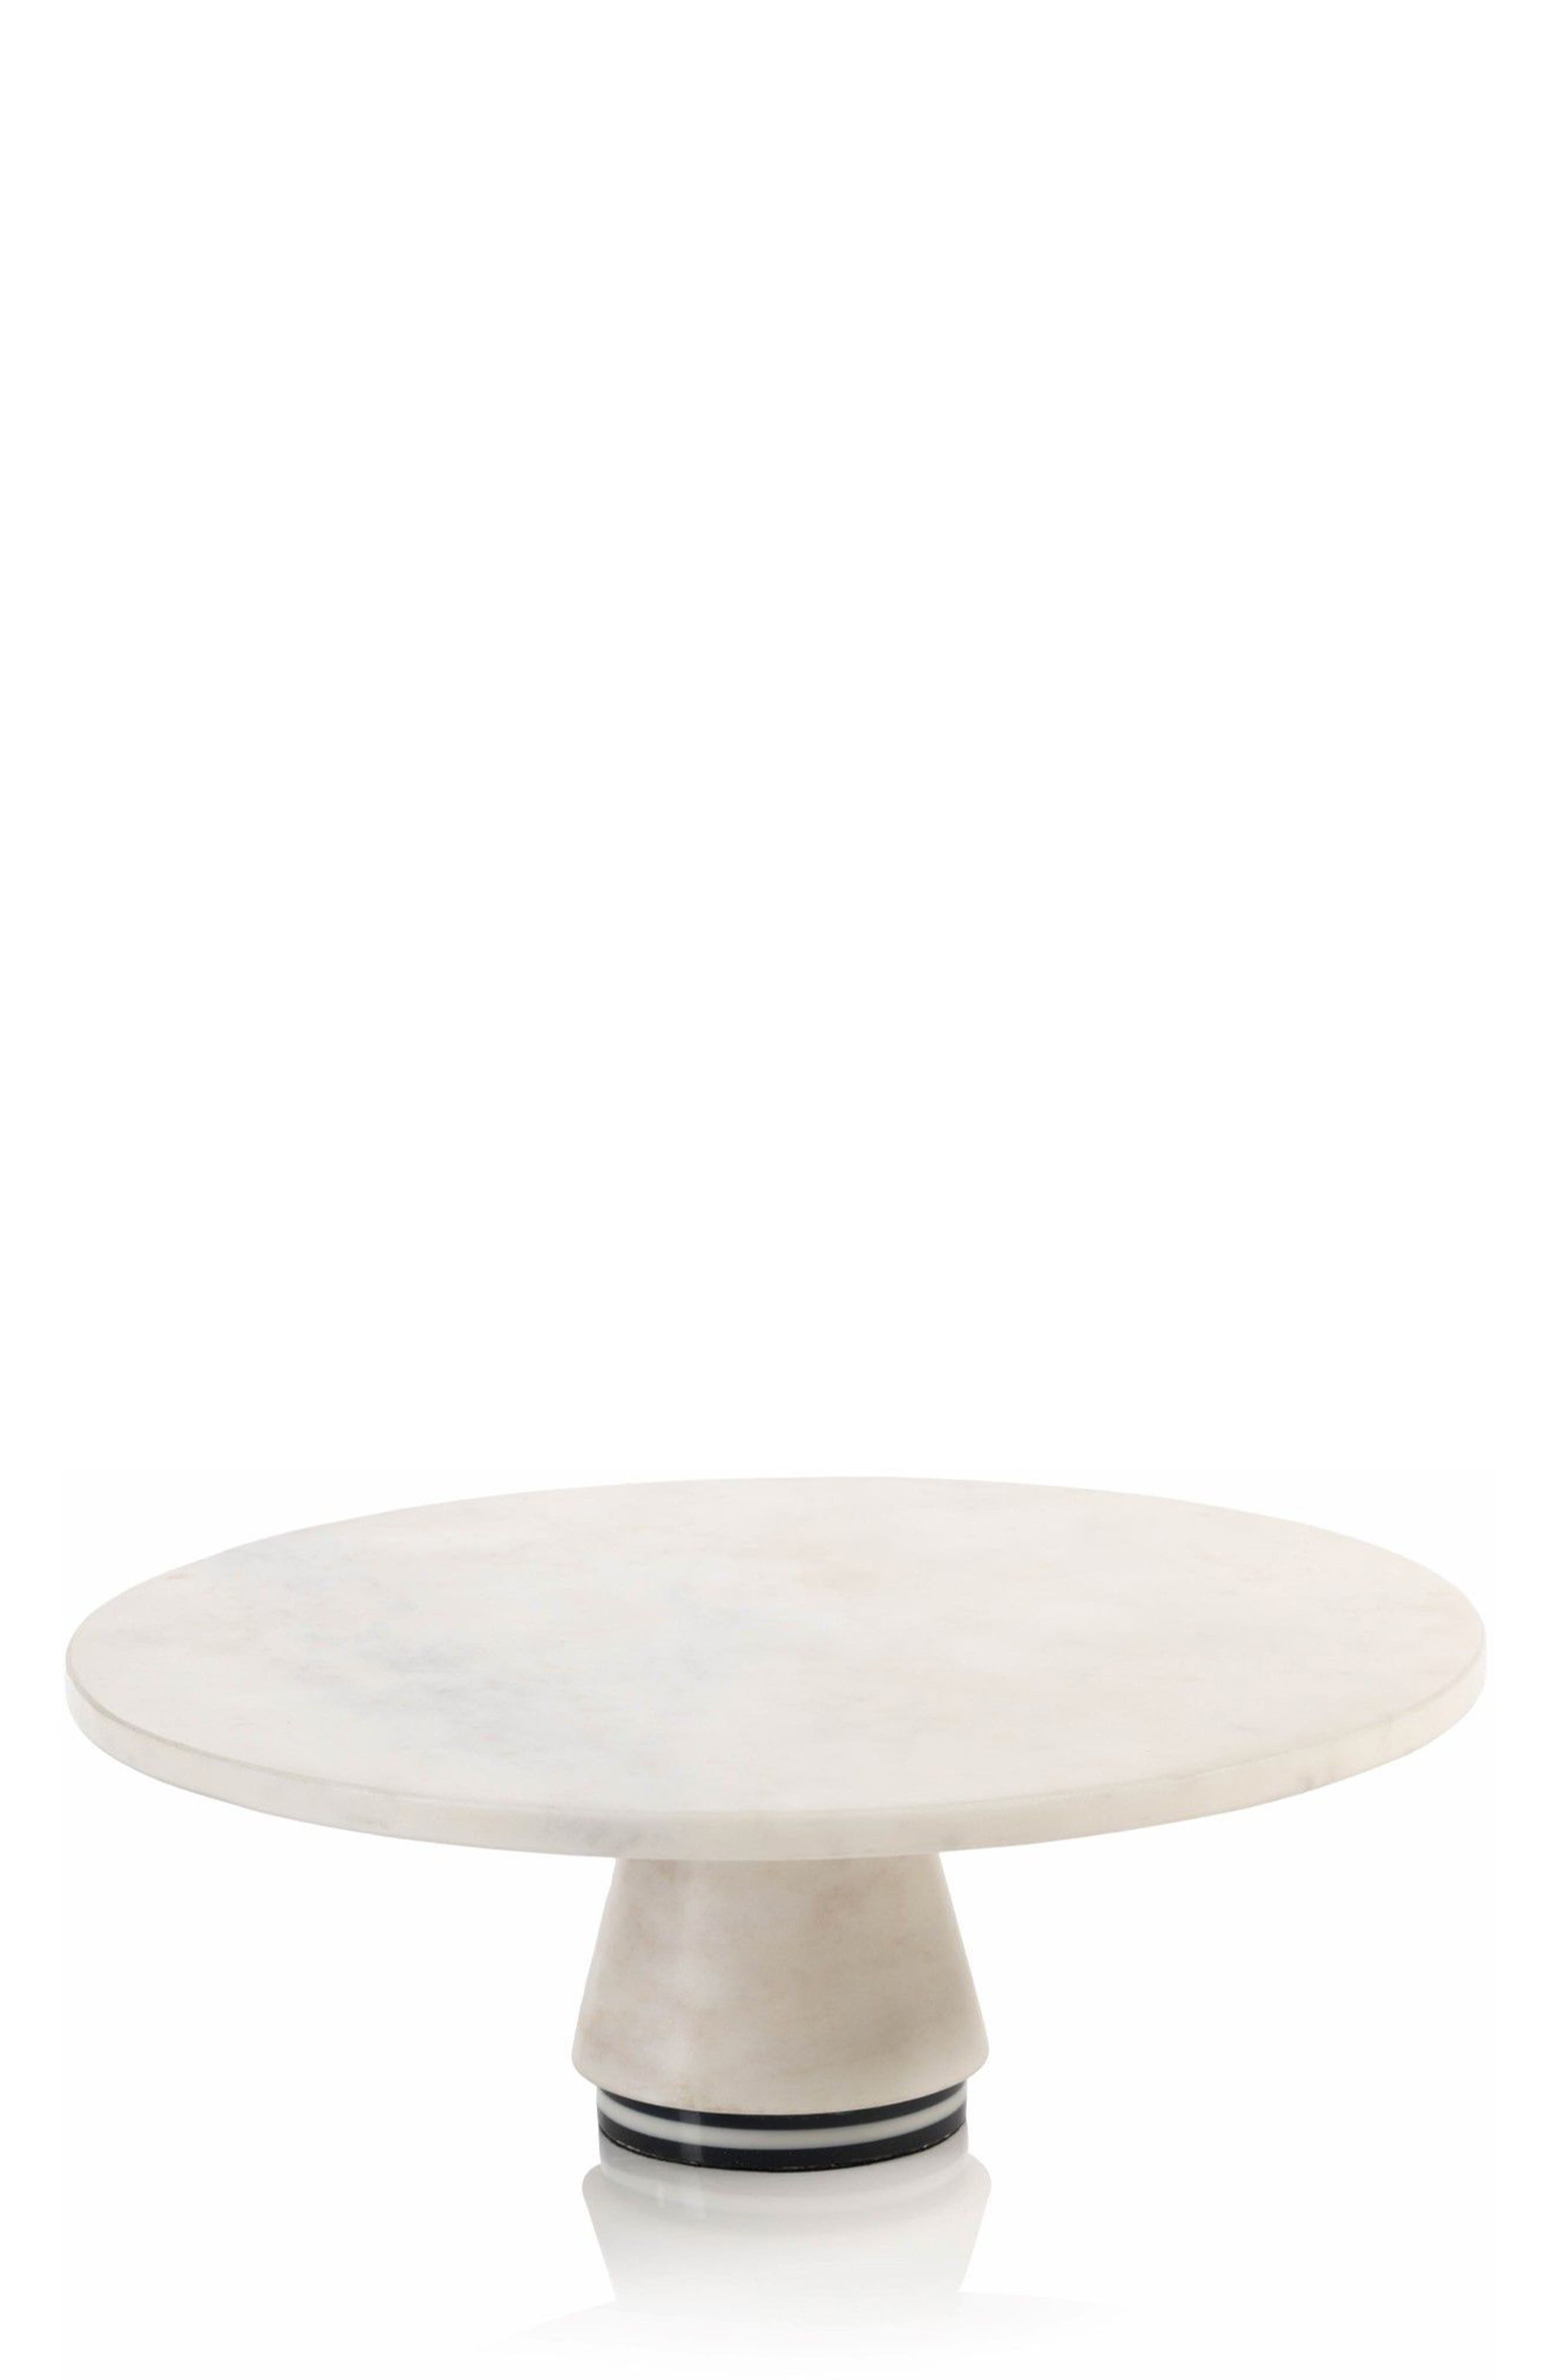 Alternate Image 1 Selected - Zodax Marine Marble Cake Stand